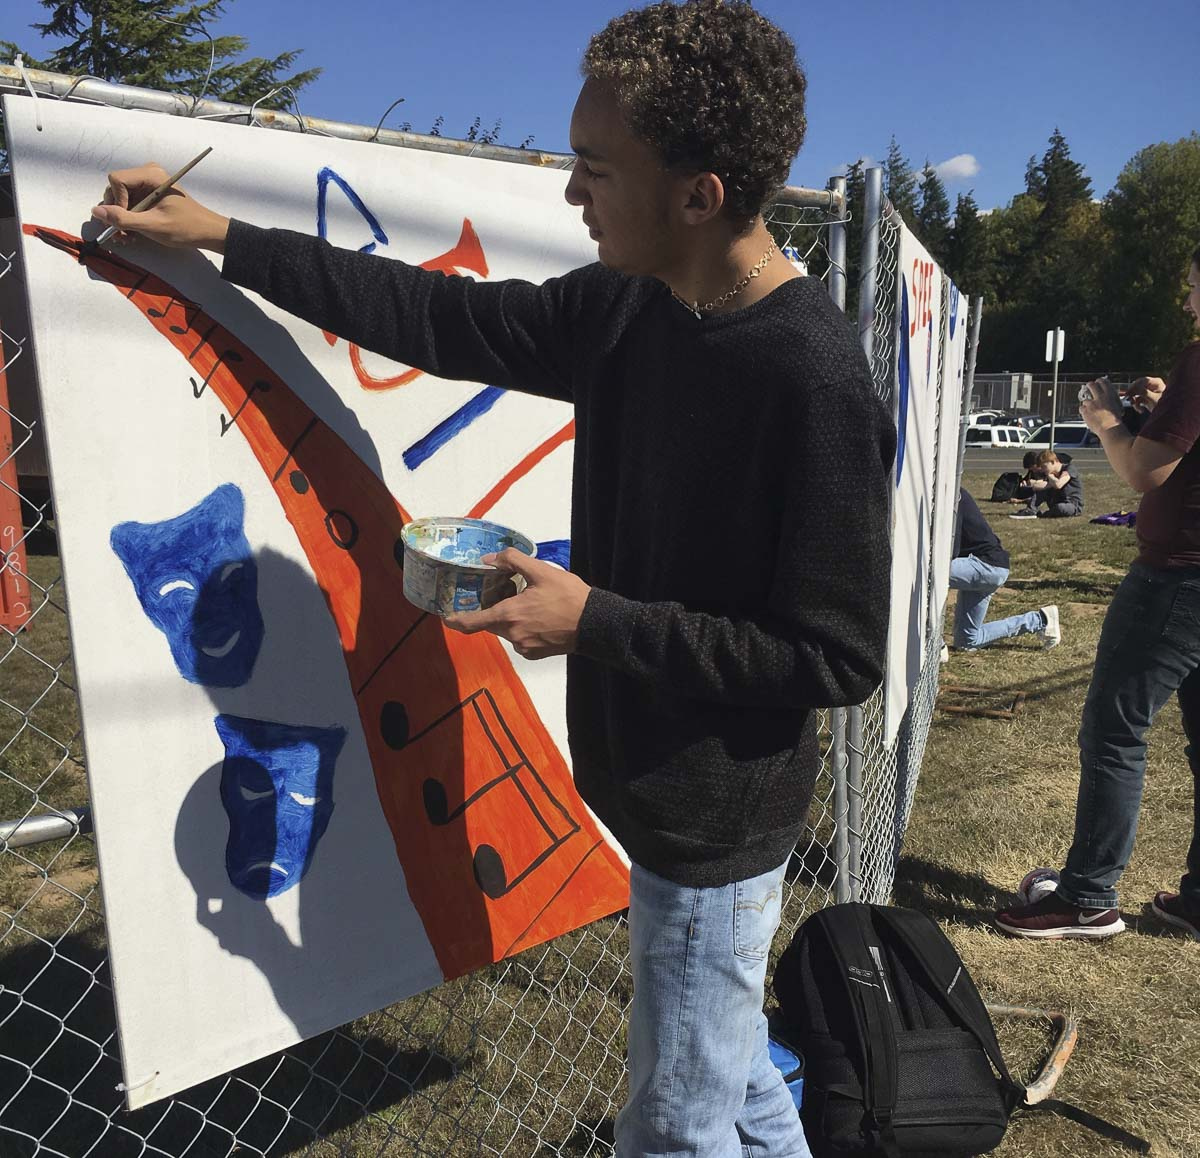 Kyshaun Summers, a Ridgefield High School senior, creates a drama and music art panel for the construction site fence line at his school. Photo courtesy of Ridgefield School District